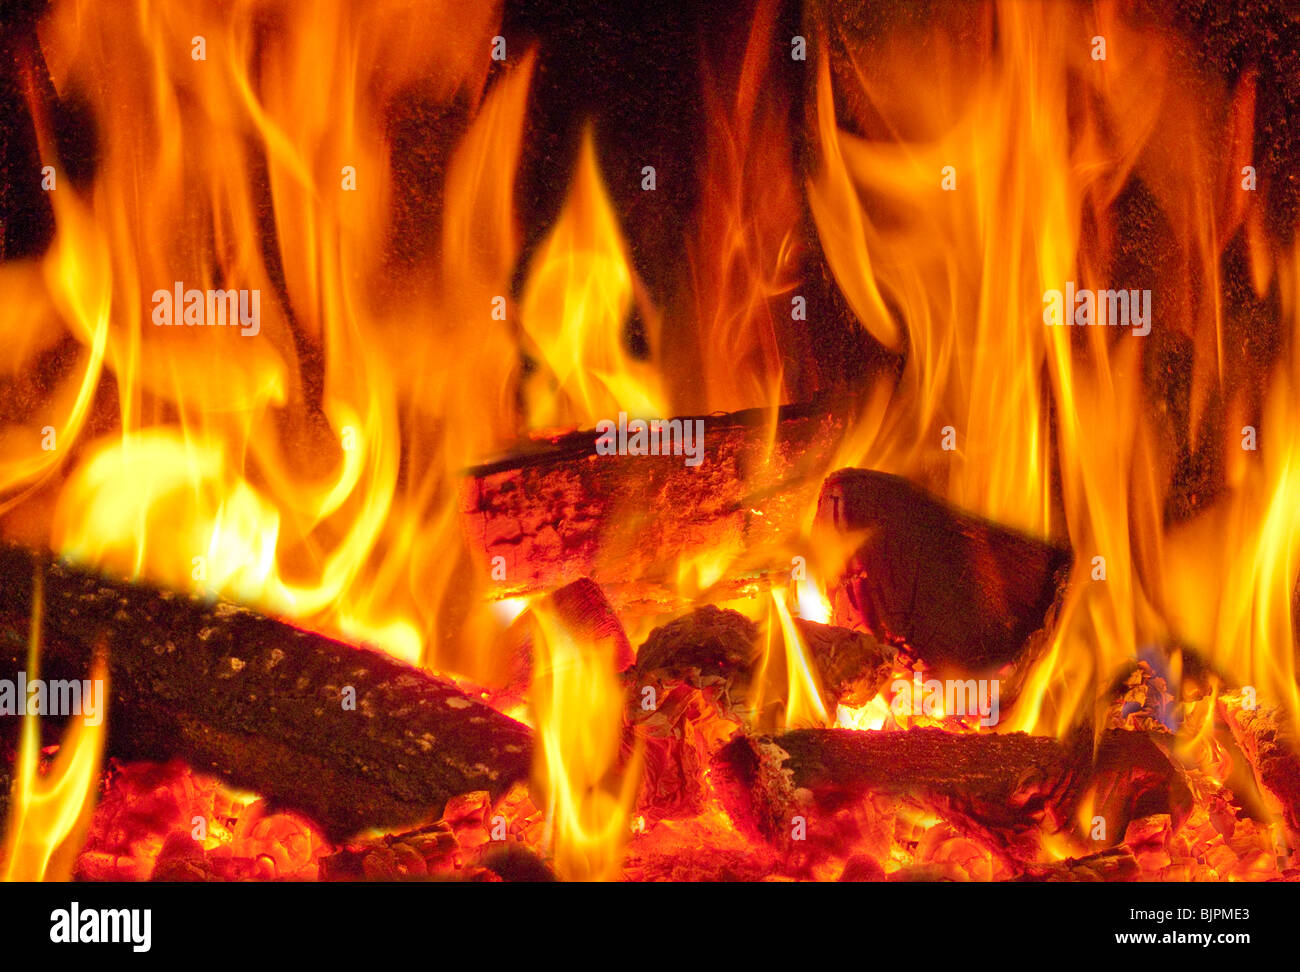 A Blazing Log Fire In A Wood Burning Stove Stock Photo ...